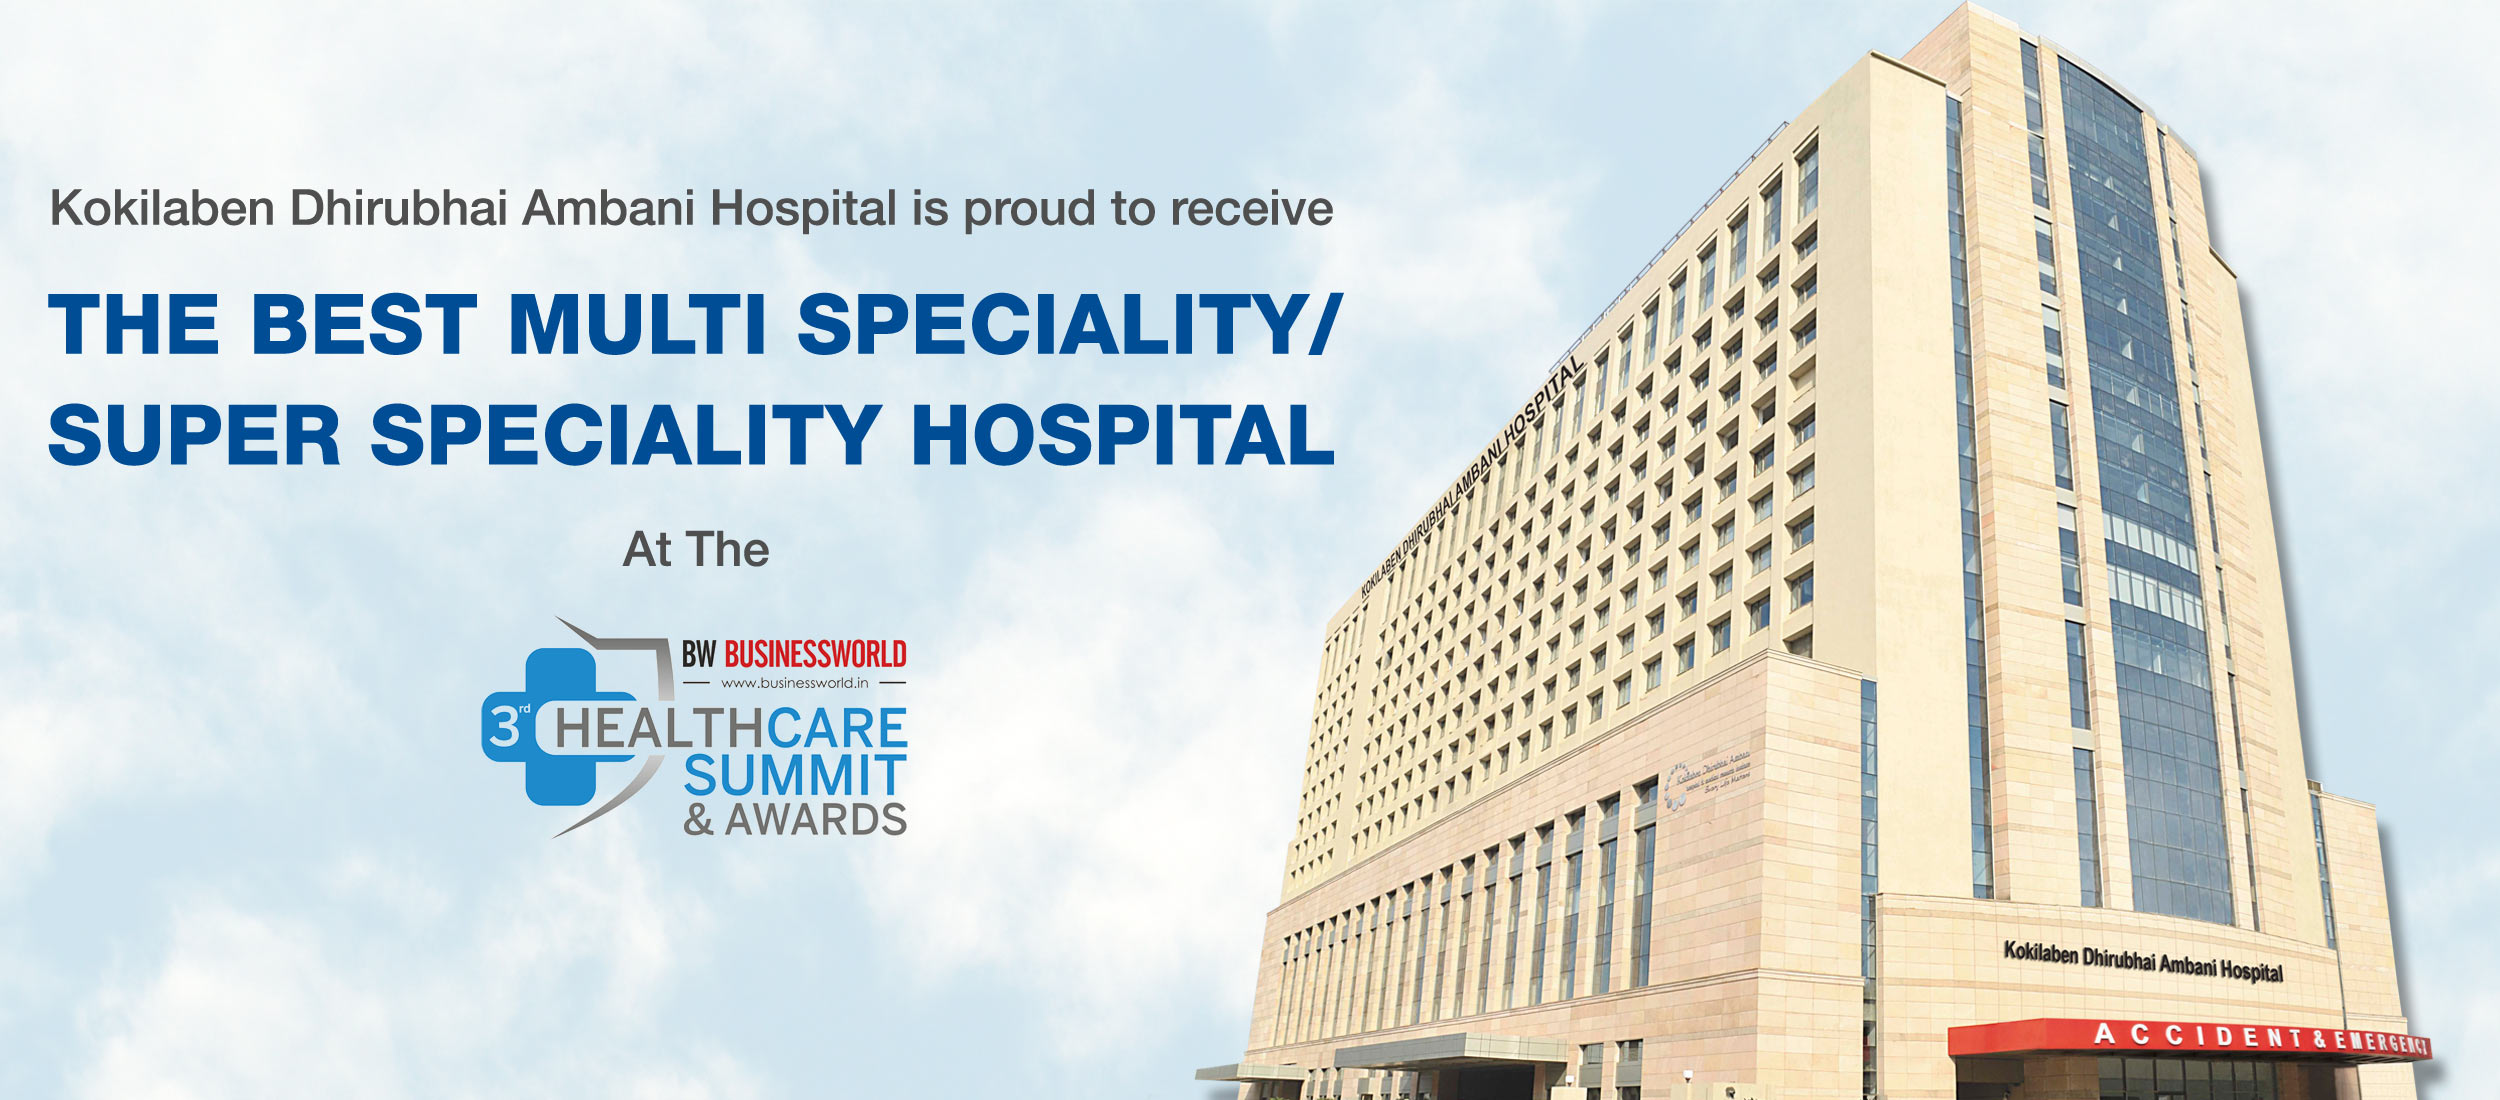 The Best Multi Speciality/ Super Speciality Hospital